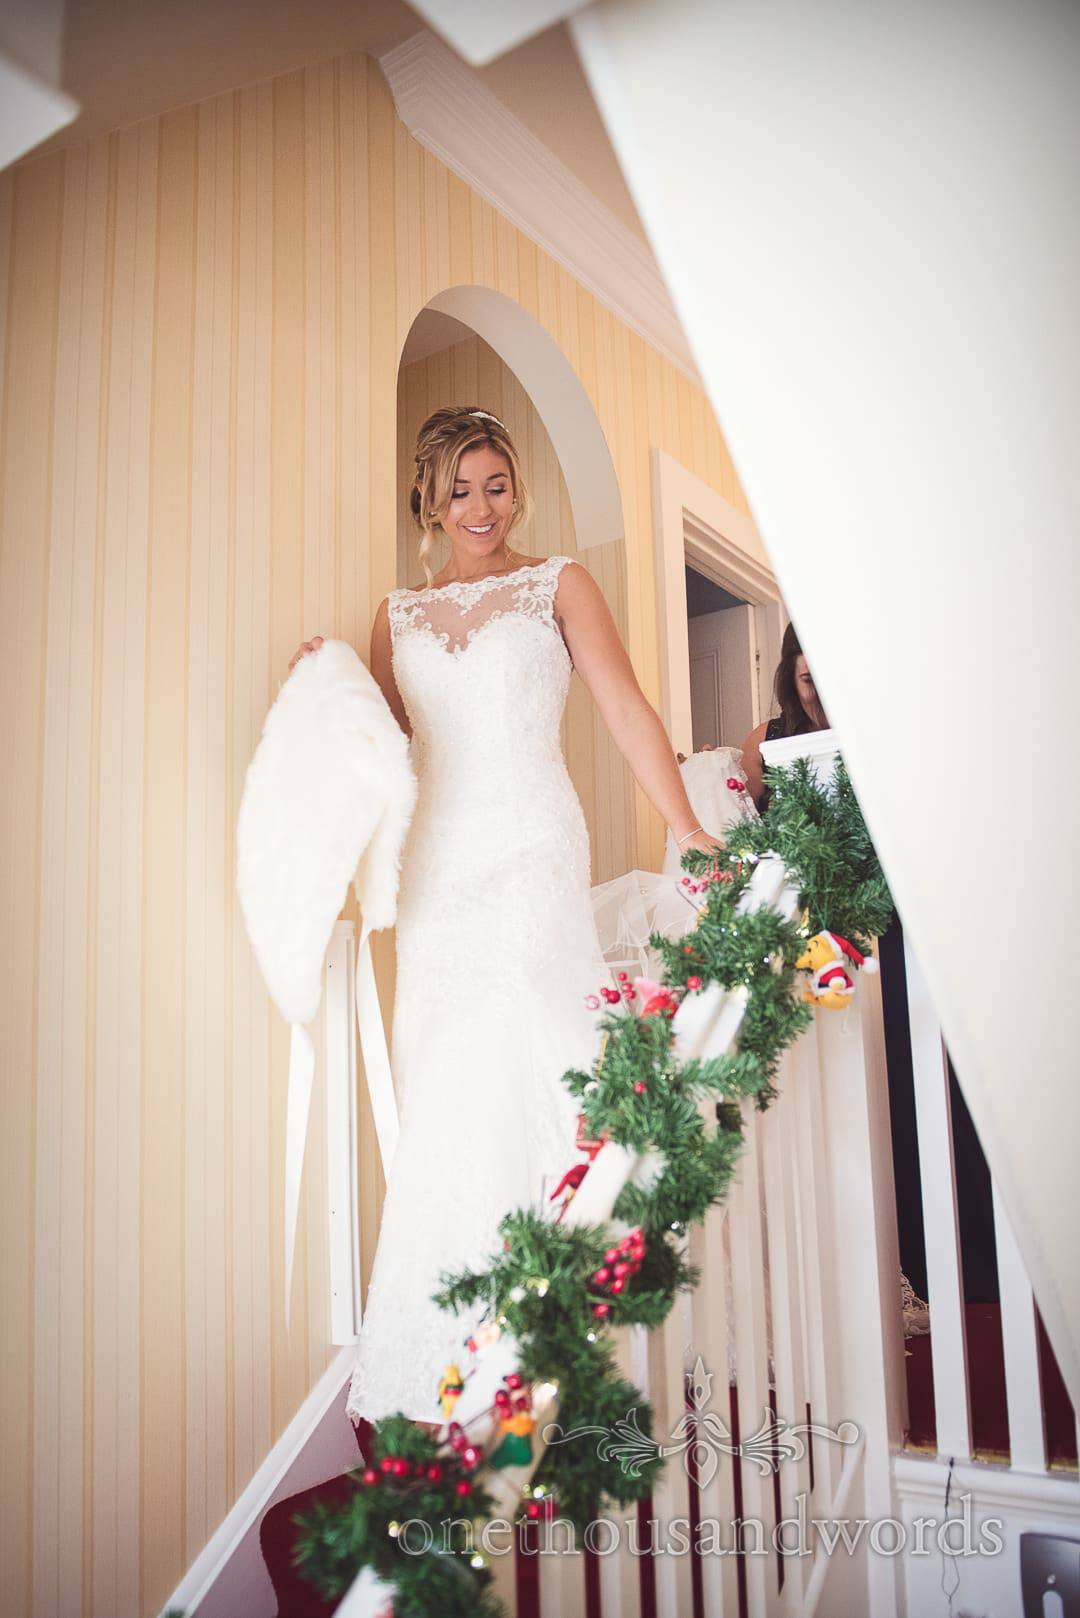 Bride in white wedding dress descends the stairs on Christmas wedding morning